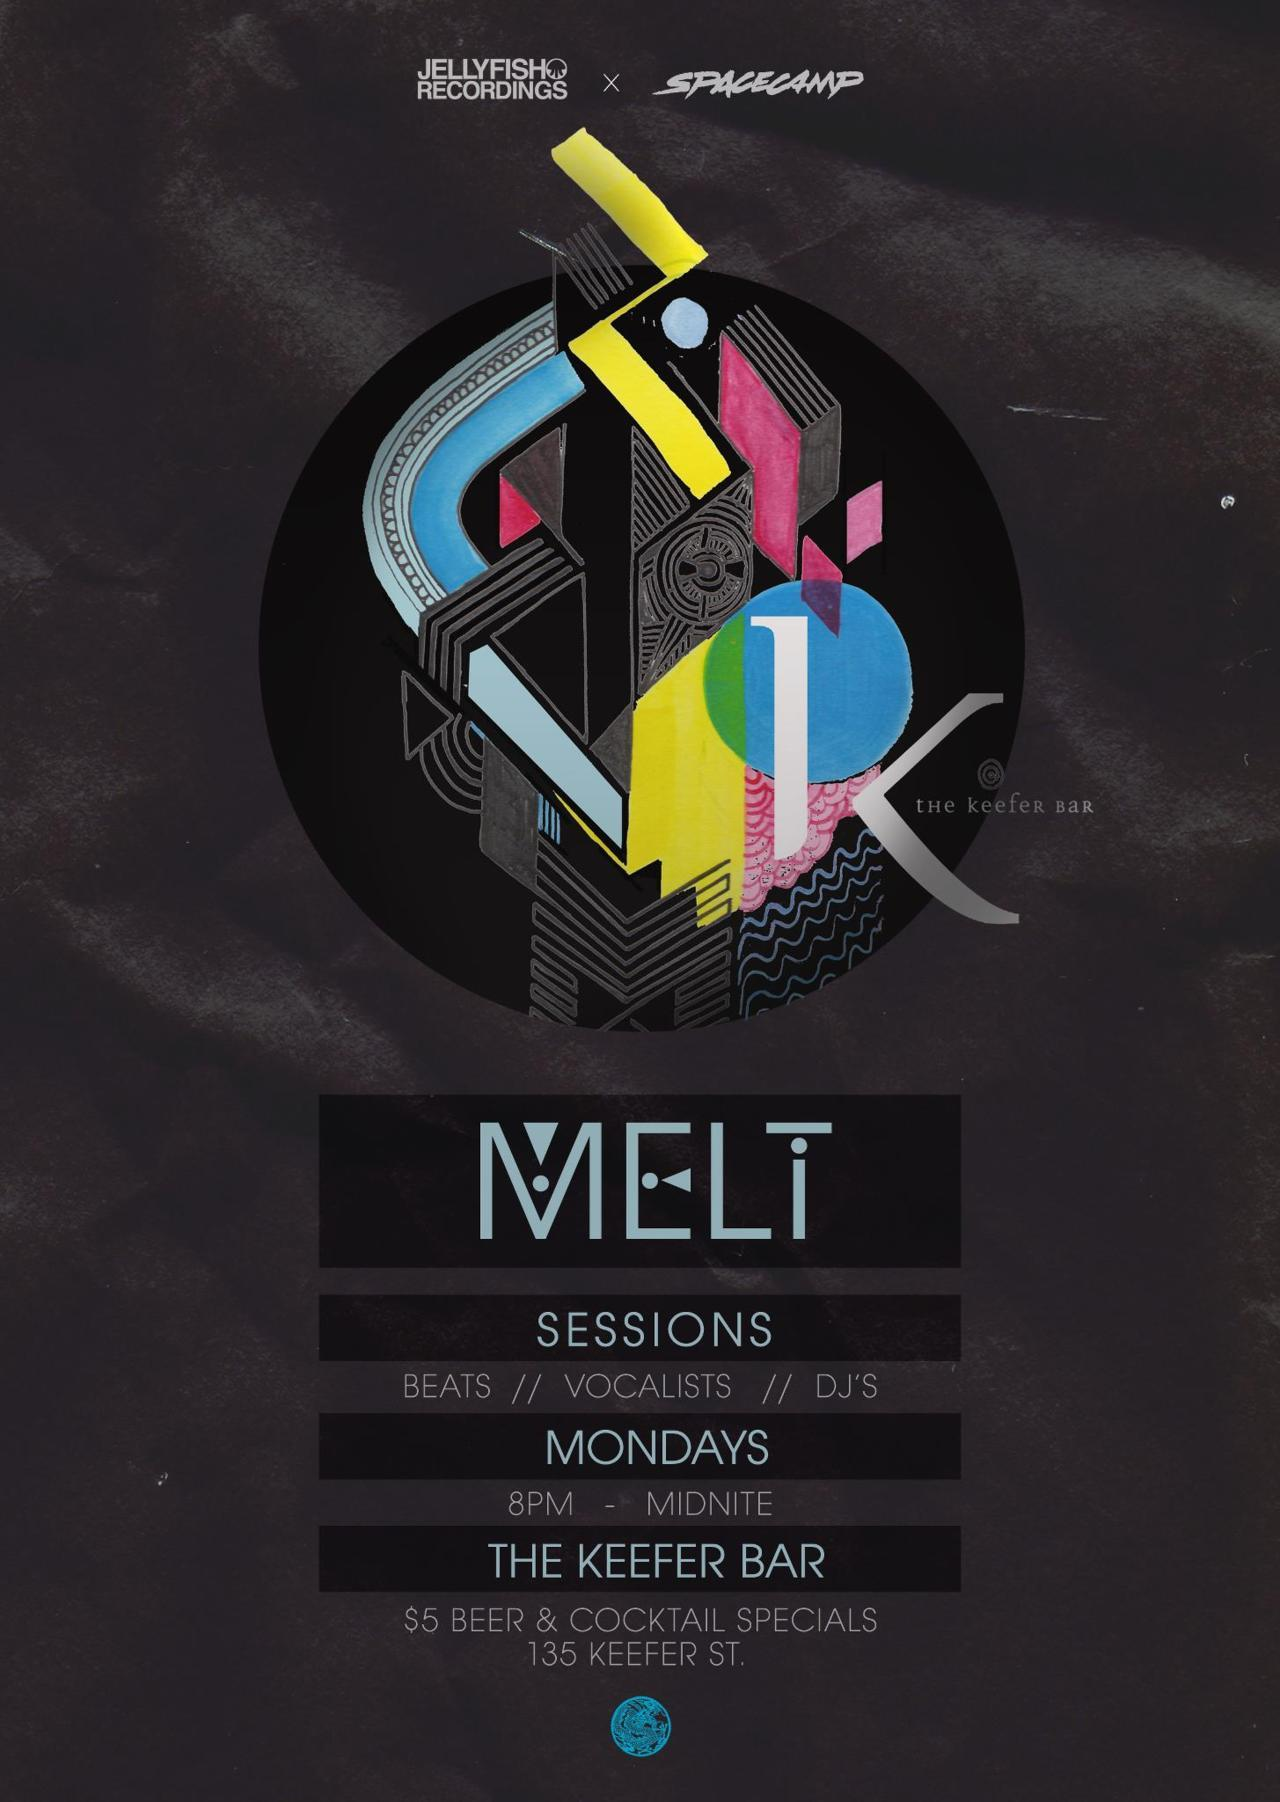 elekwentfolk:  Melt Beat Sessions @ Keefer Bar - May 14th, 2012 …tonight y'all!